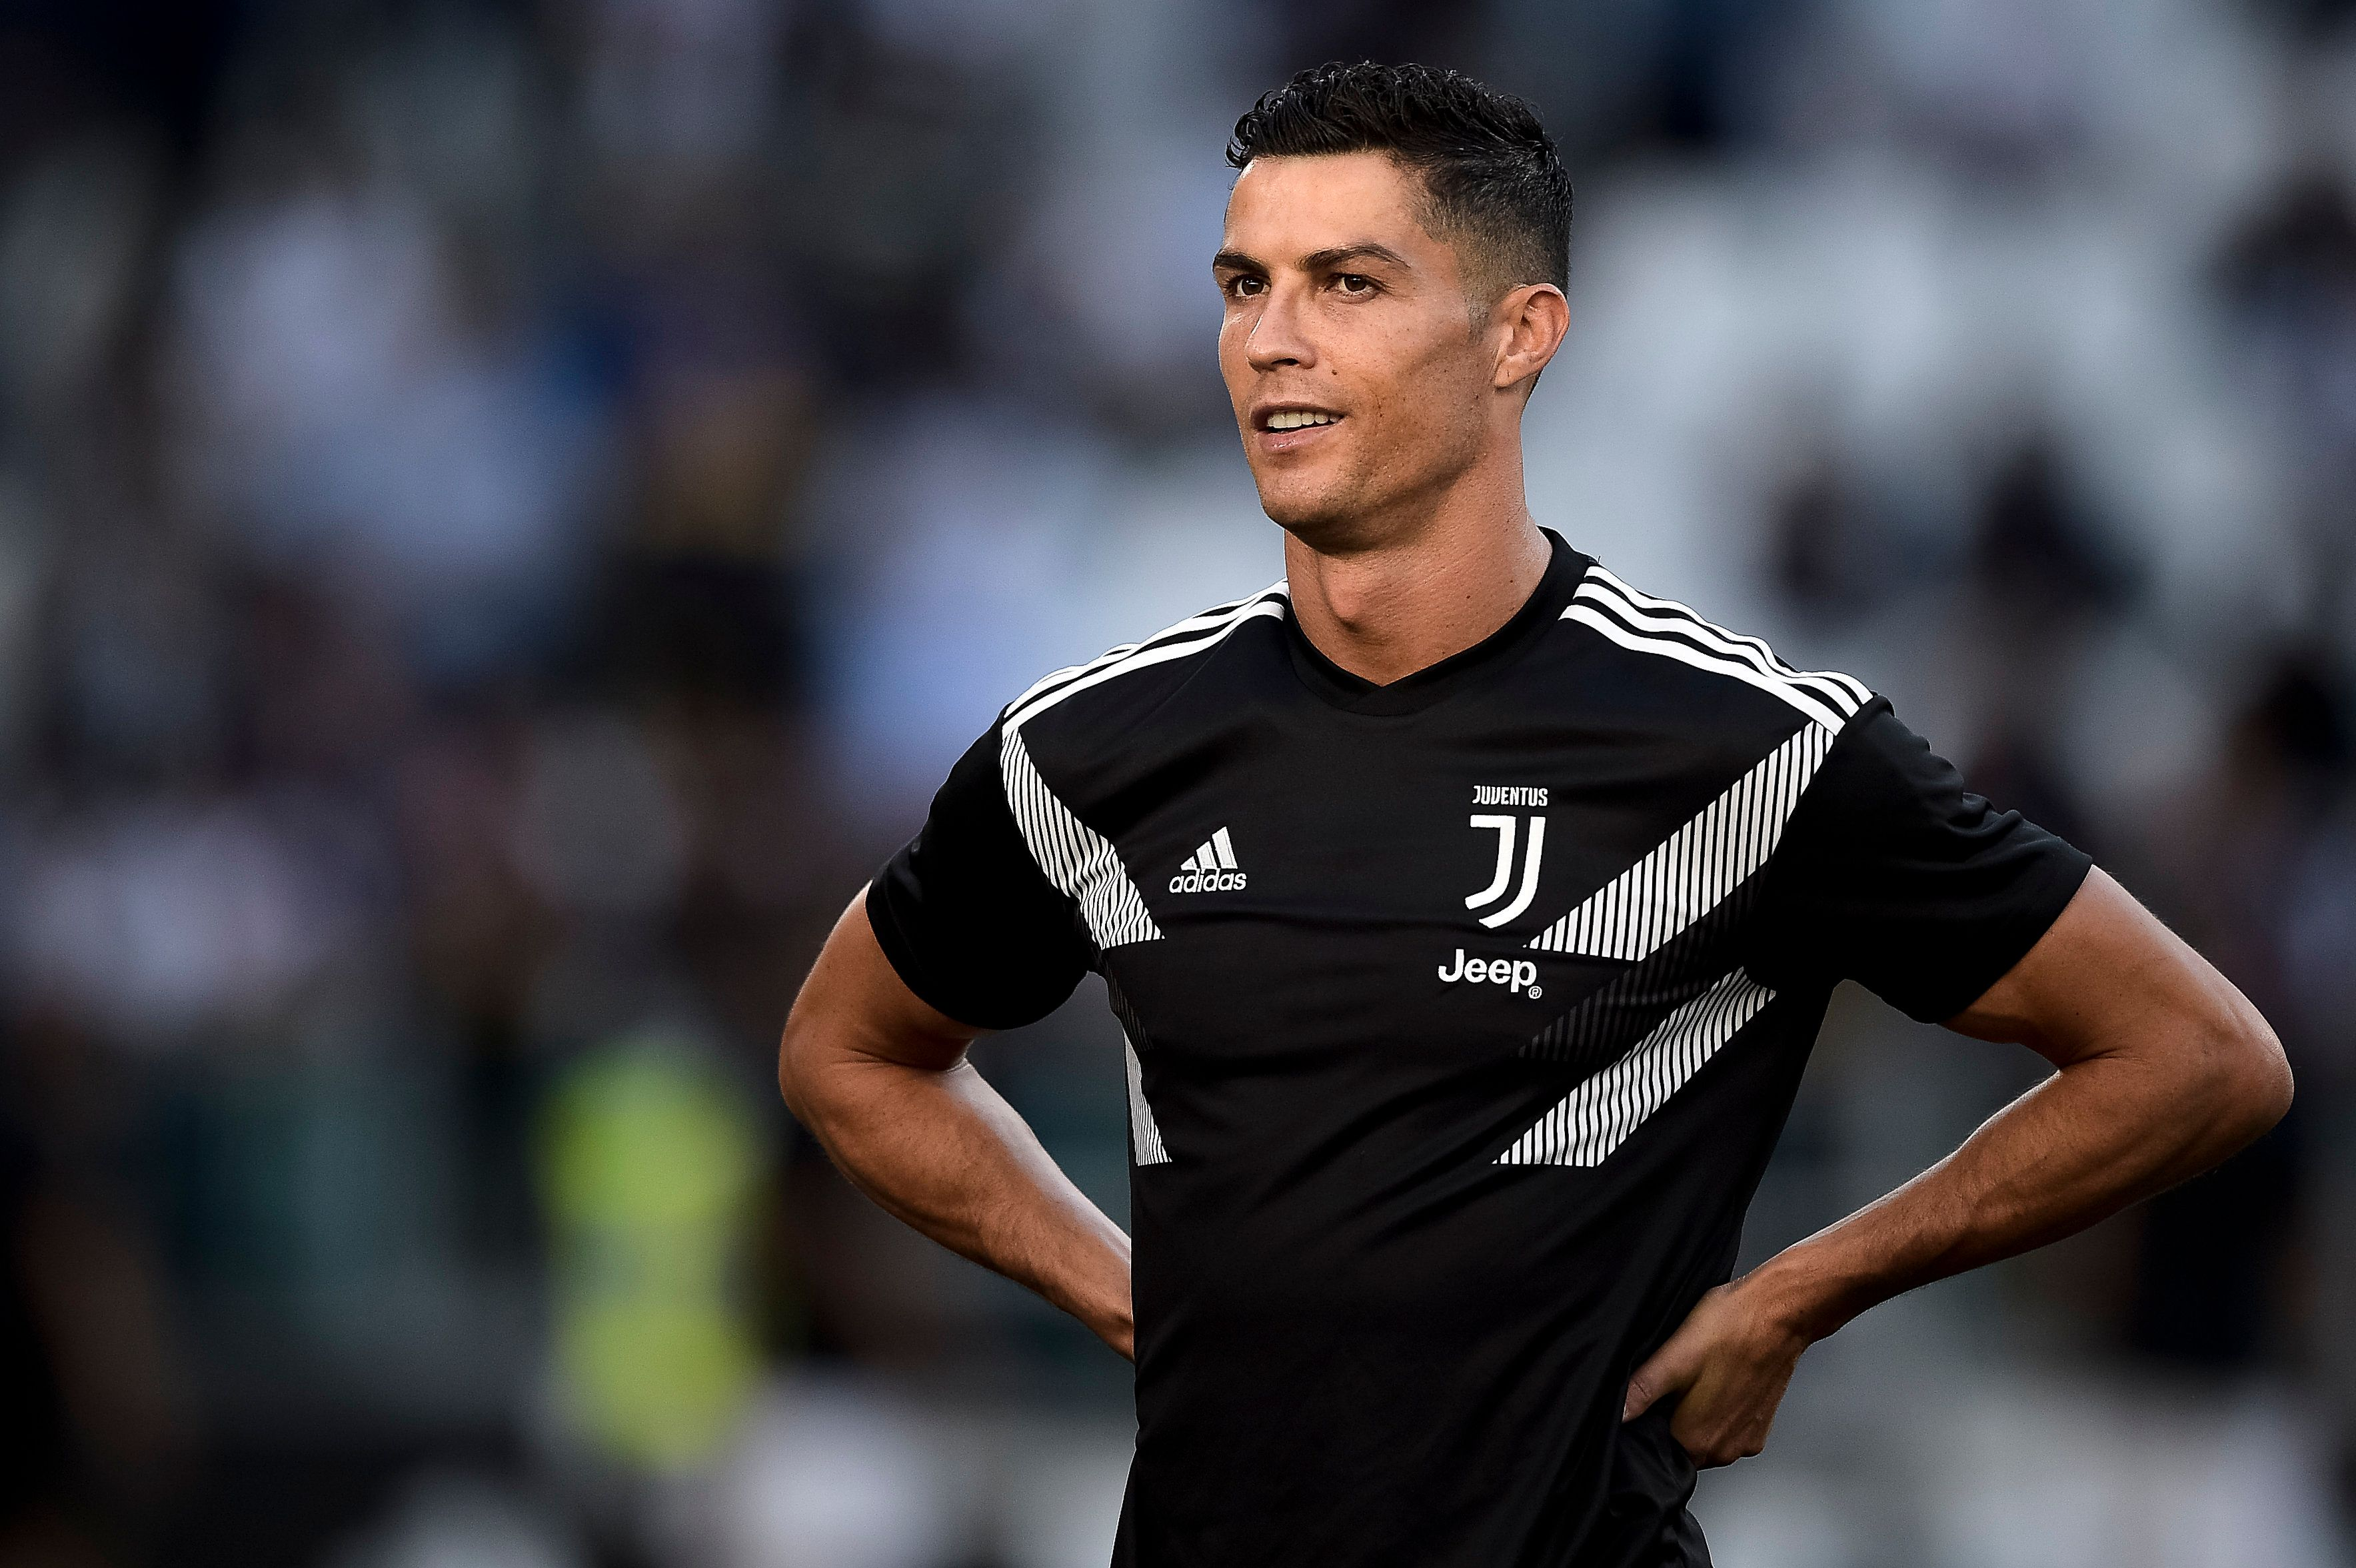 ALLIANZ STADIUM, TURIN, ITALY - 2018/09/29: Cristiano Ronaldo of Juventus FC smiles prior to the Serie A football match between Juventus FC and SSC Napoli. Juventus FC won 3-1 over SSC Napoli. (Photo by Nicolò Campo/LightRocket via Getty Images)